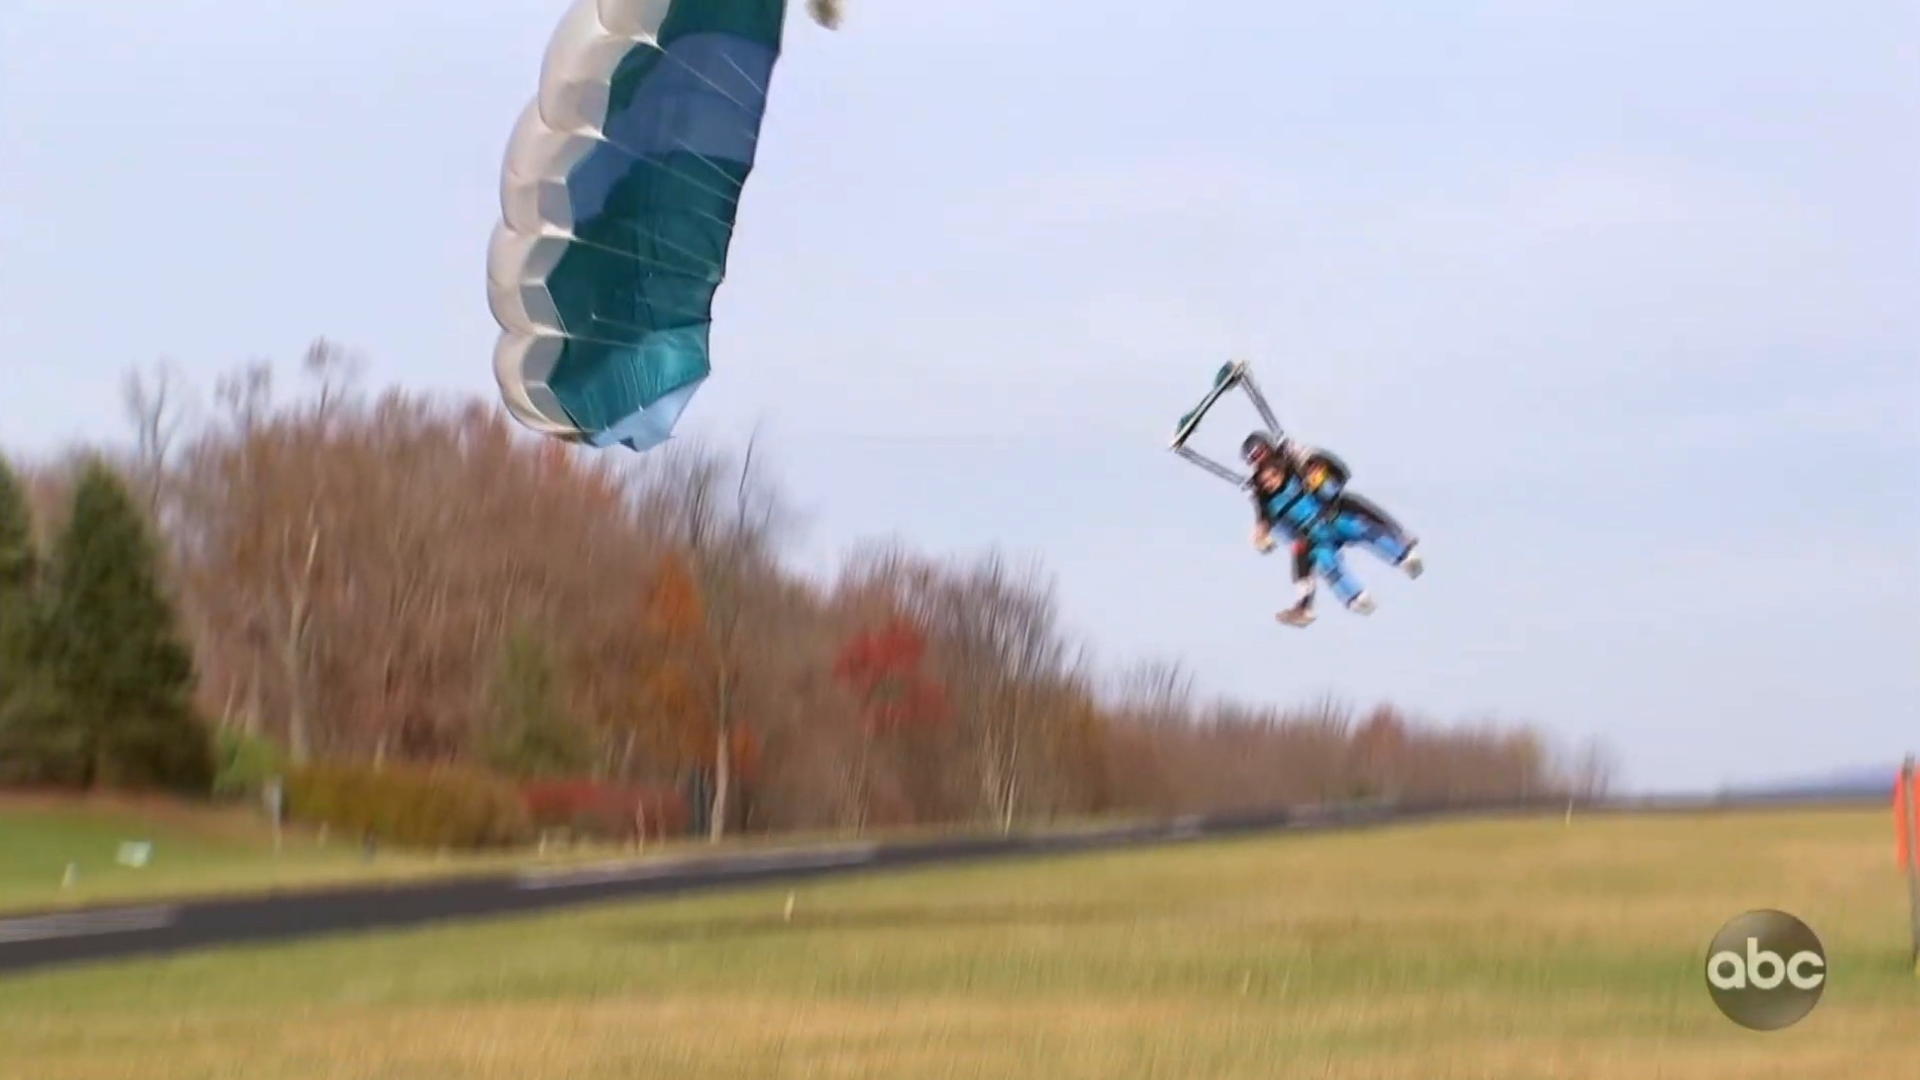 Controversial 'Bachelor' contestant suffers horrifying skydiving accident